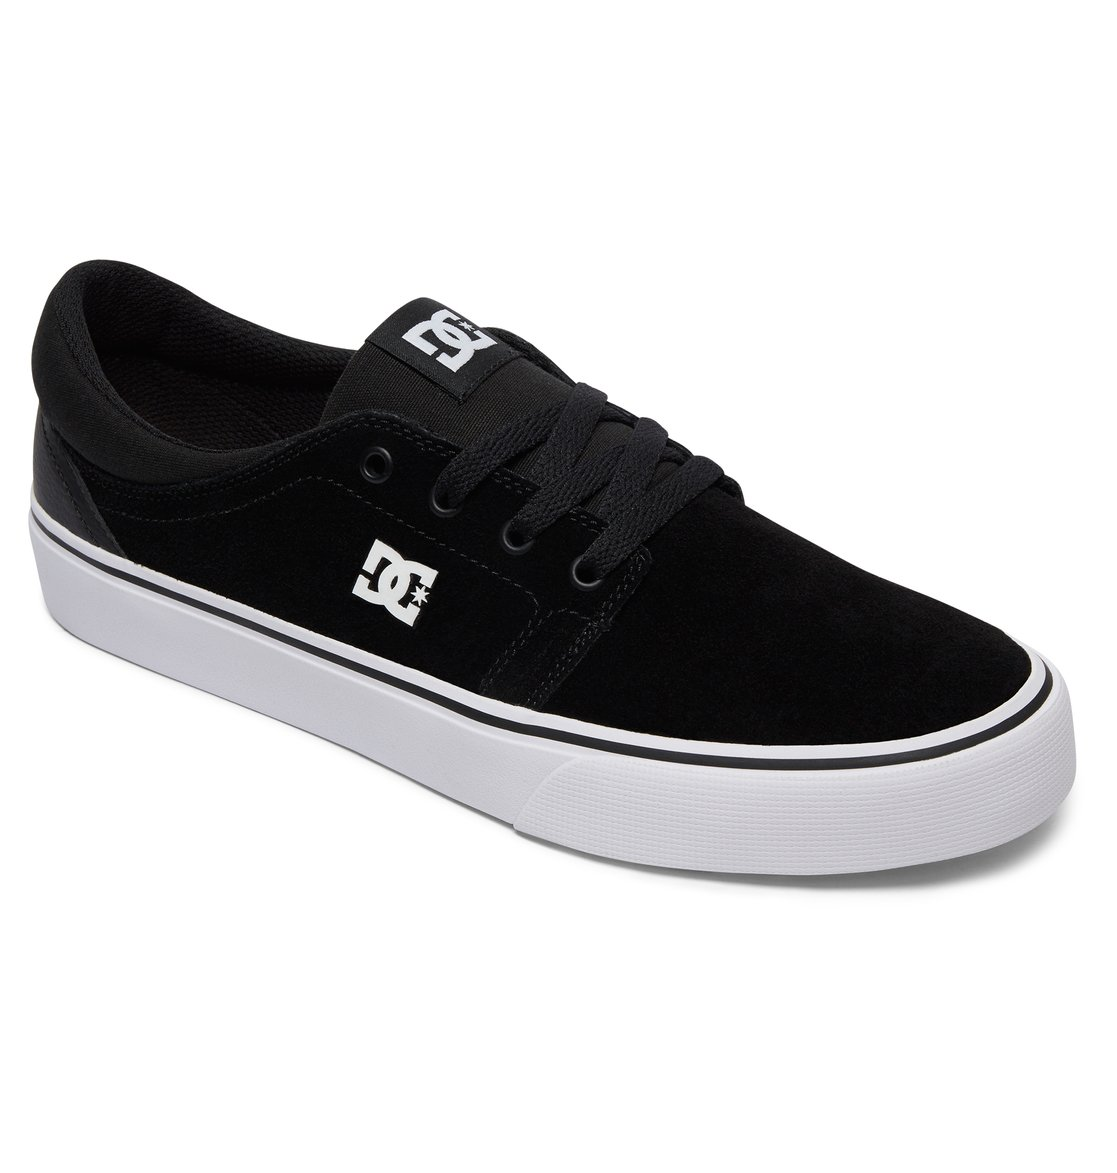 Skates shoes - DC TRASE OeveS3j